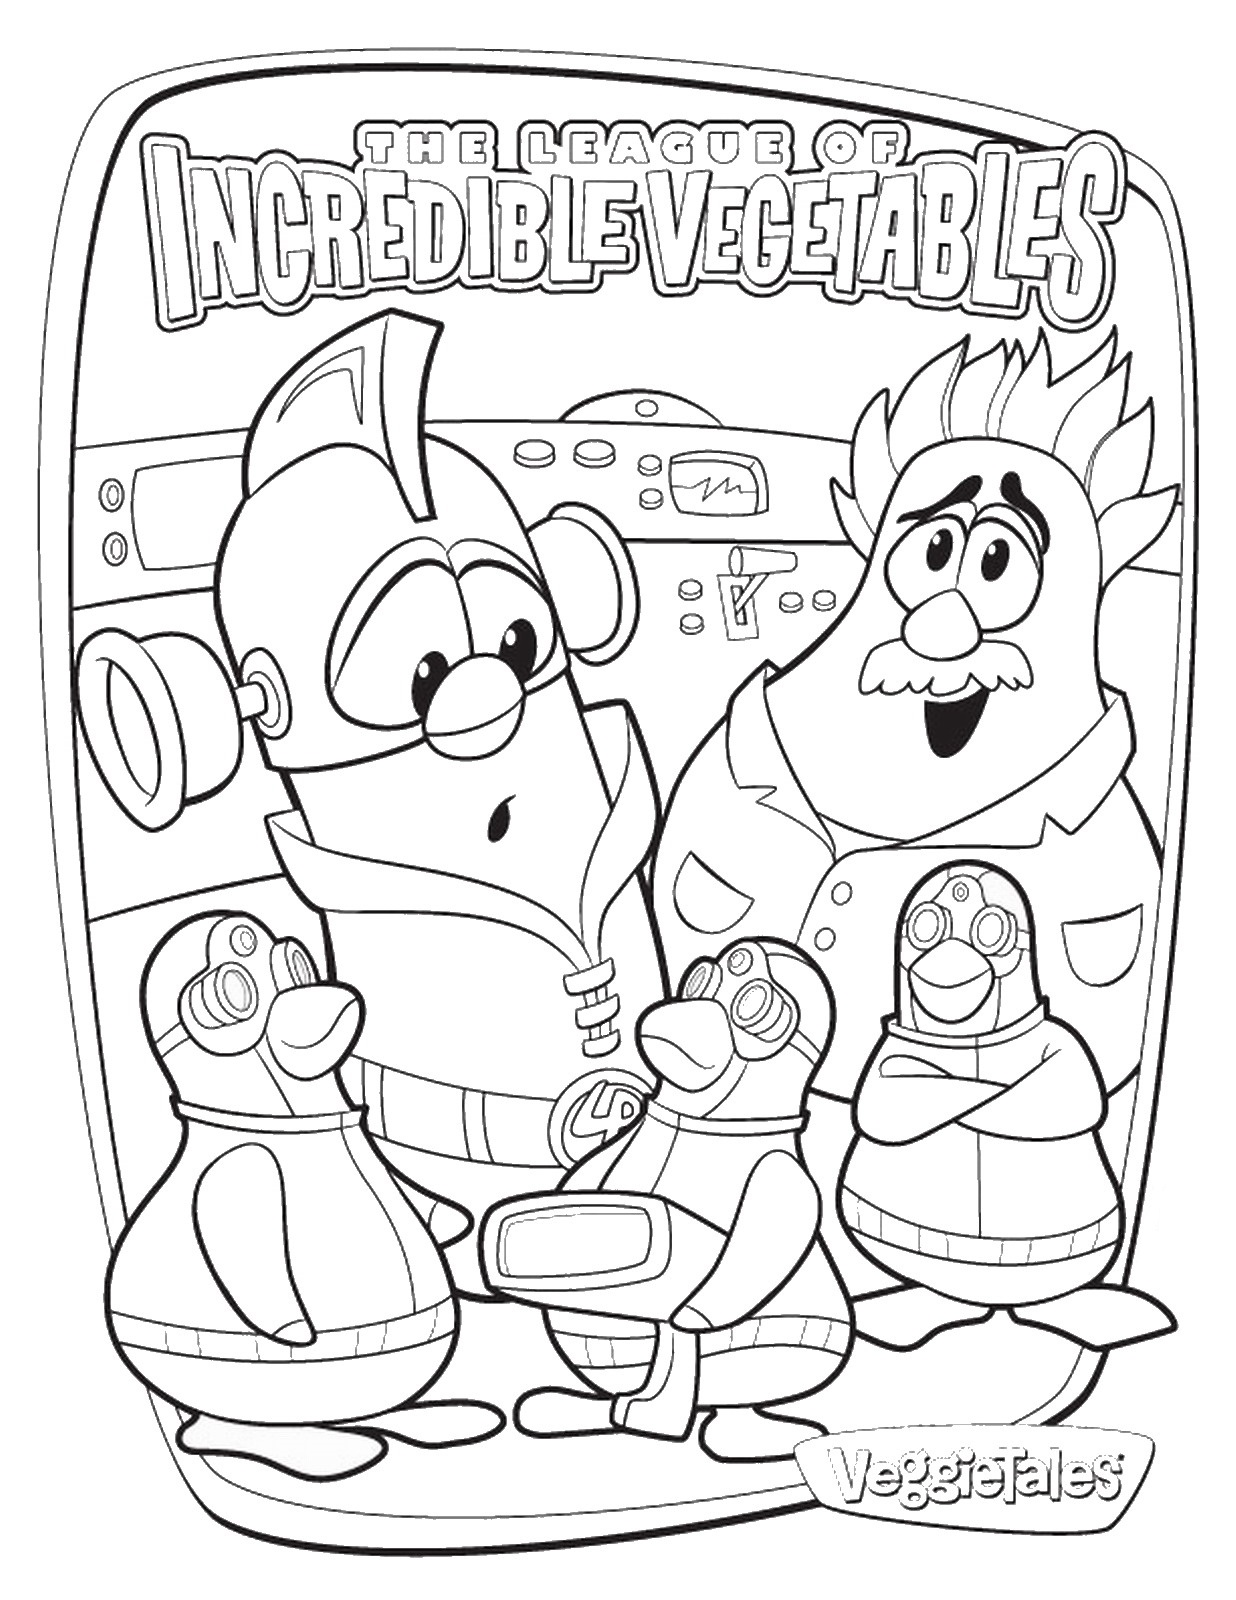 Free Veggie Tales Coloring Sheets